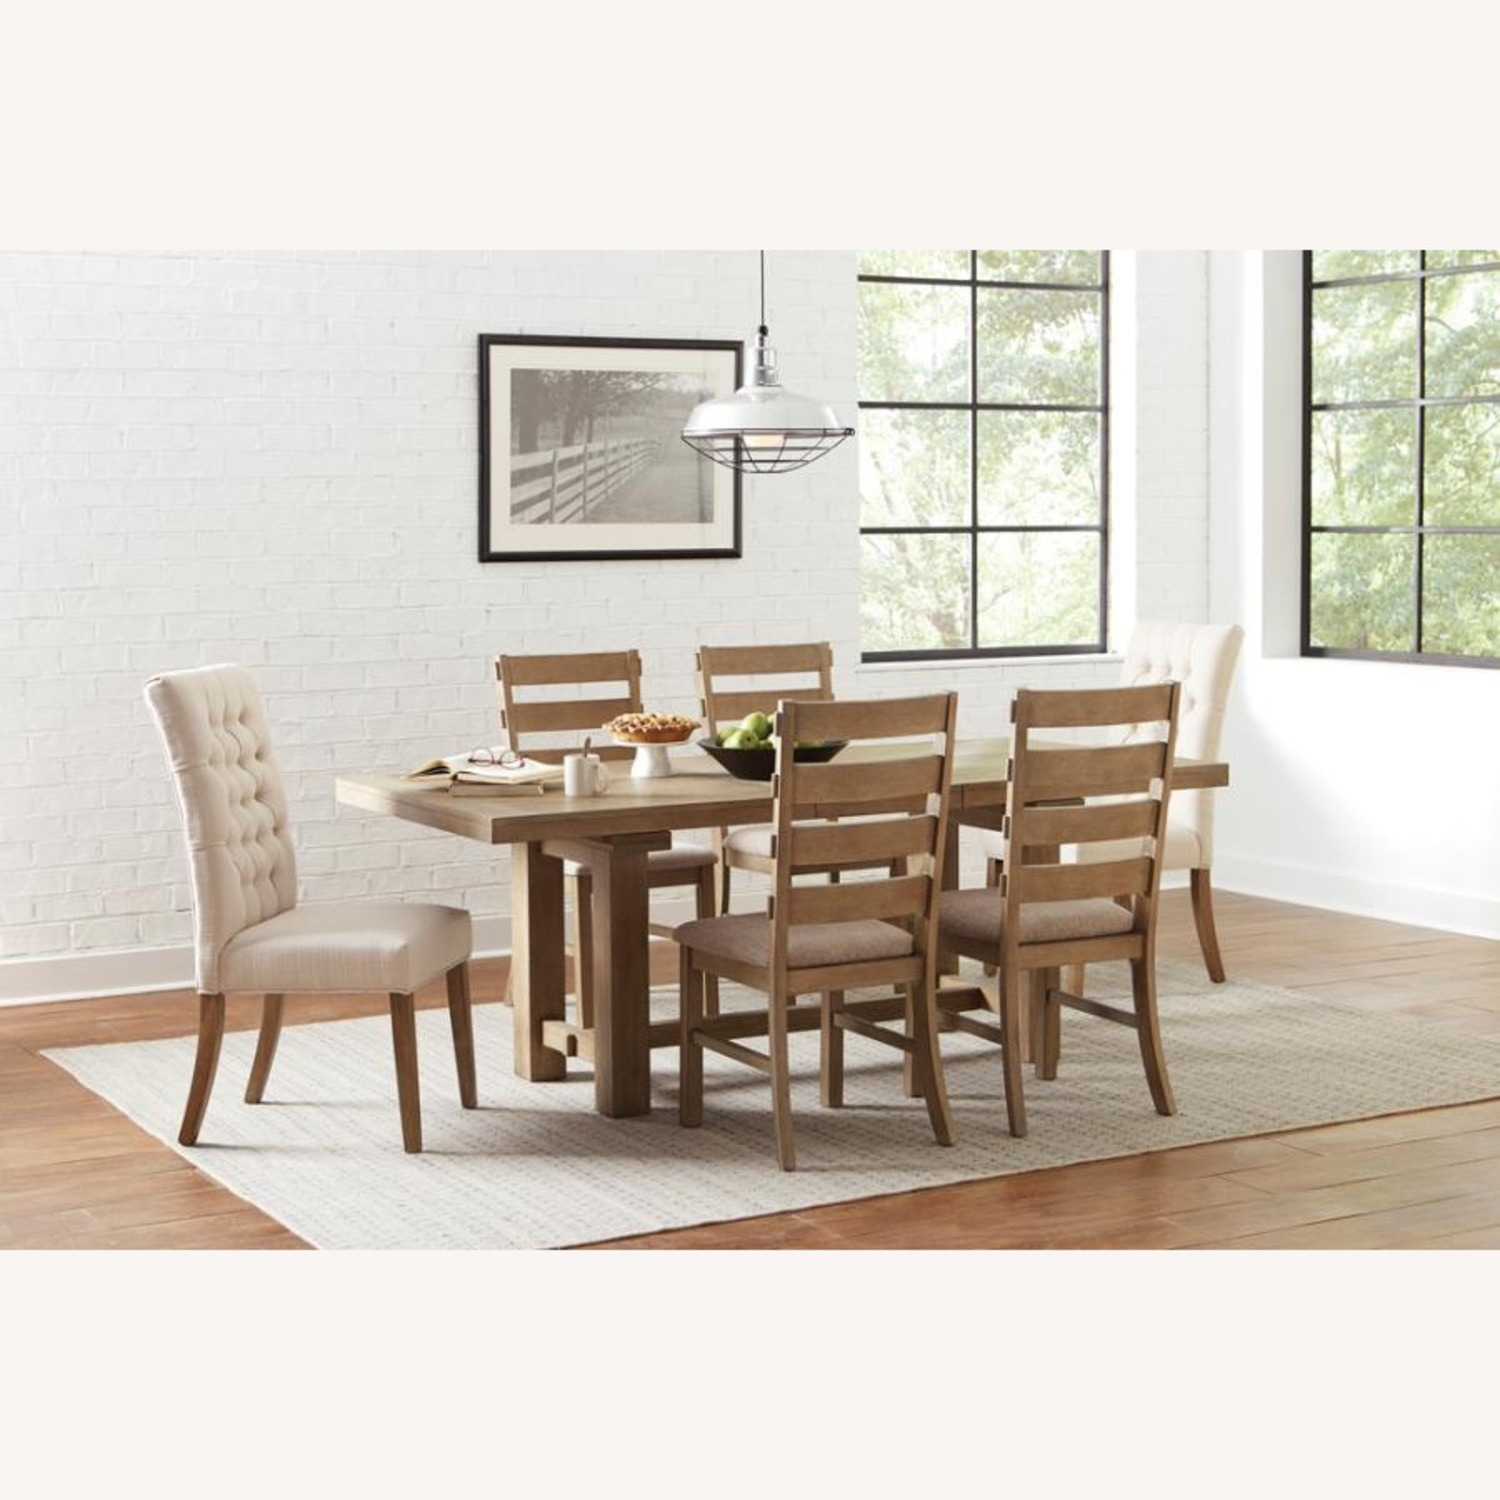 Rustic Dining Chair In Vineyard Oak Finish - image-5